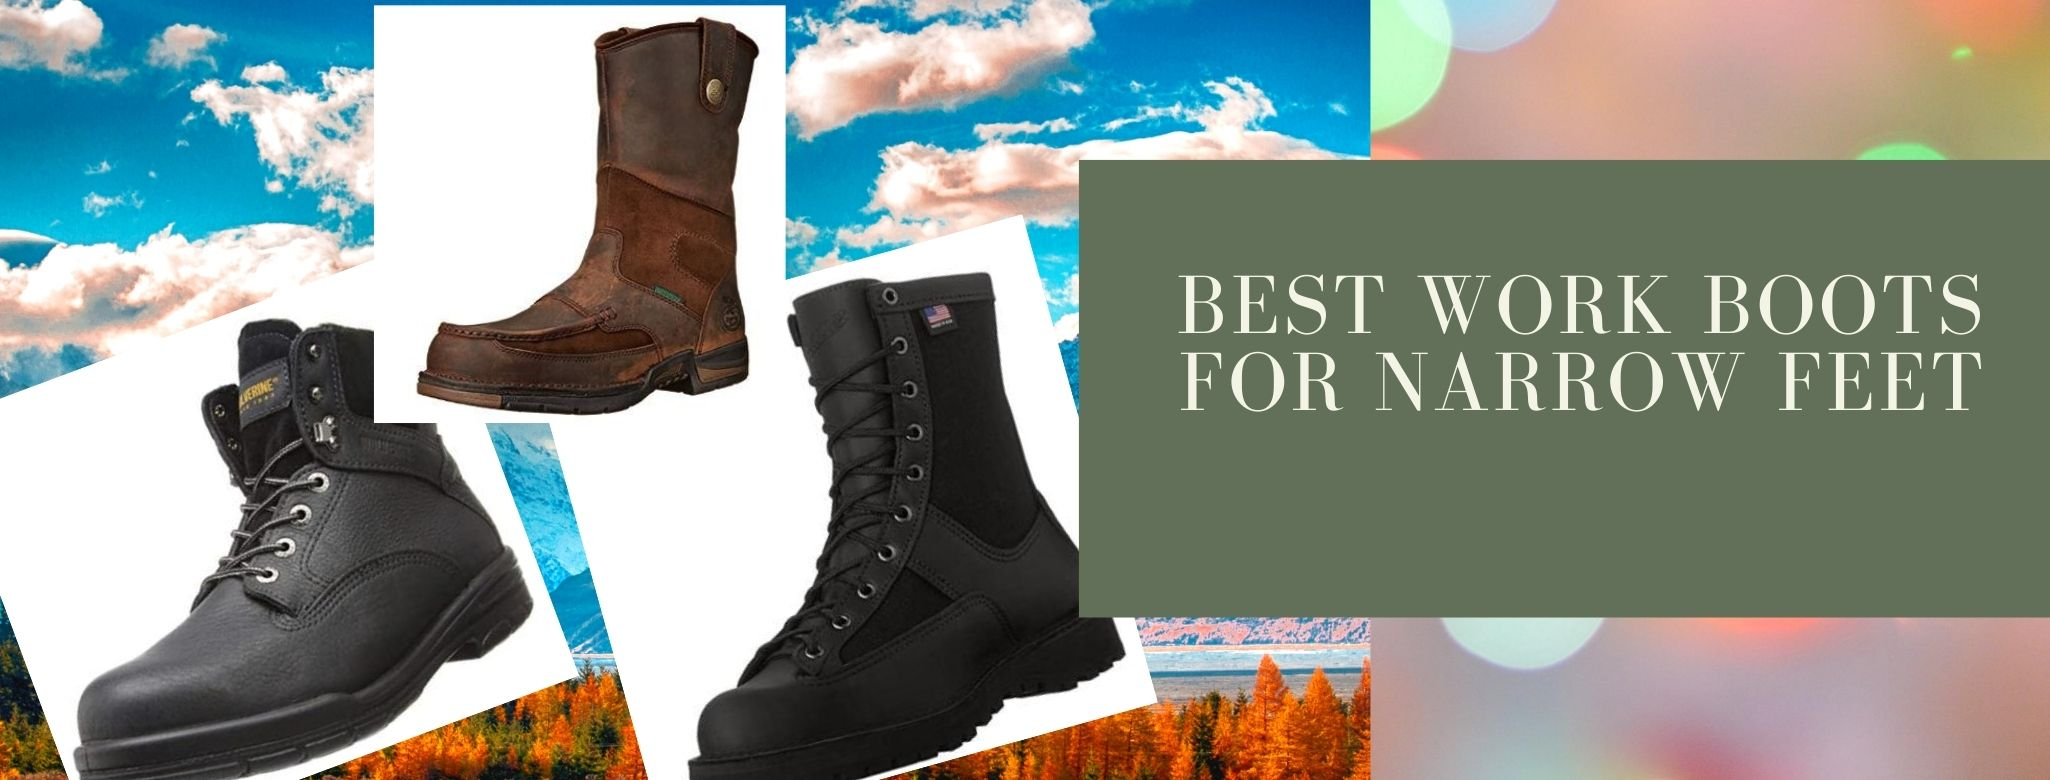 Comfortable boots for narrow feet